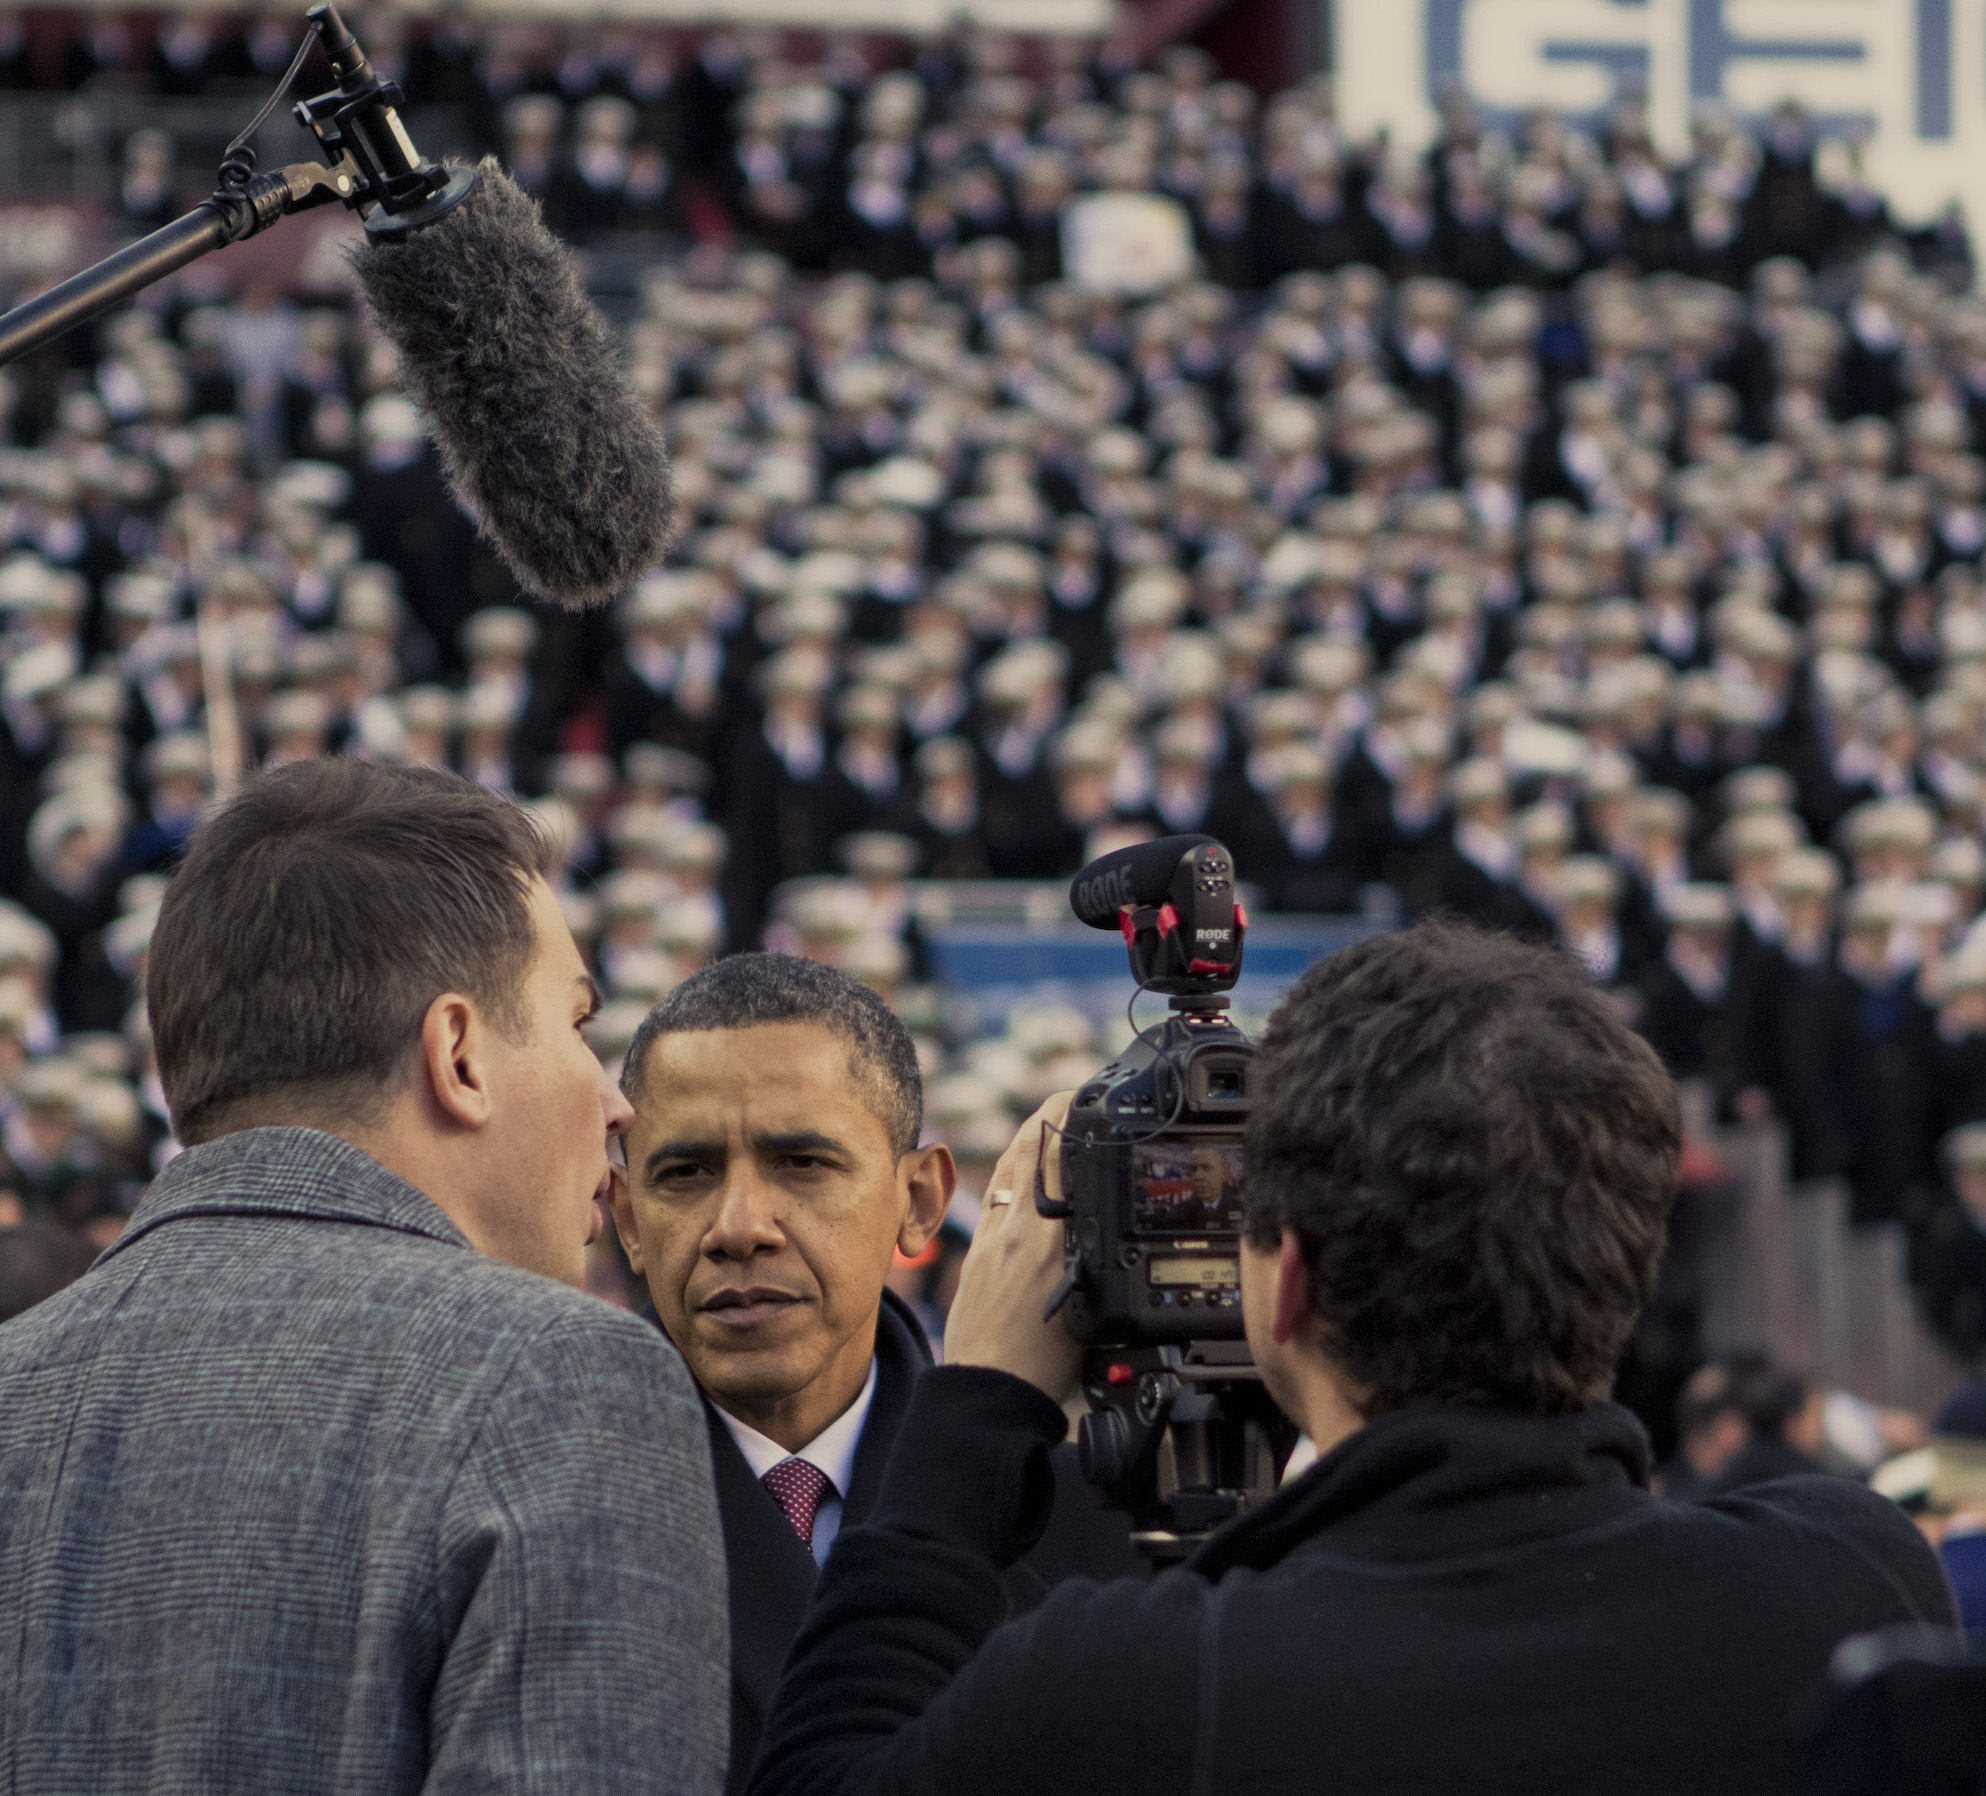 Interviewing President Obama with 30 seconds of prep and no lights was a challenge that led to growth.